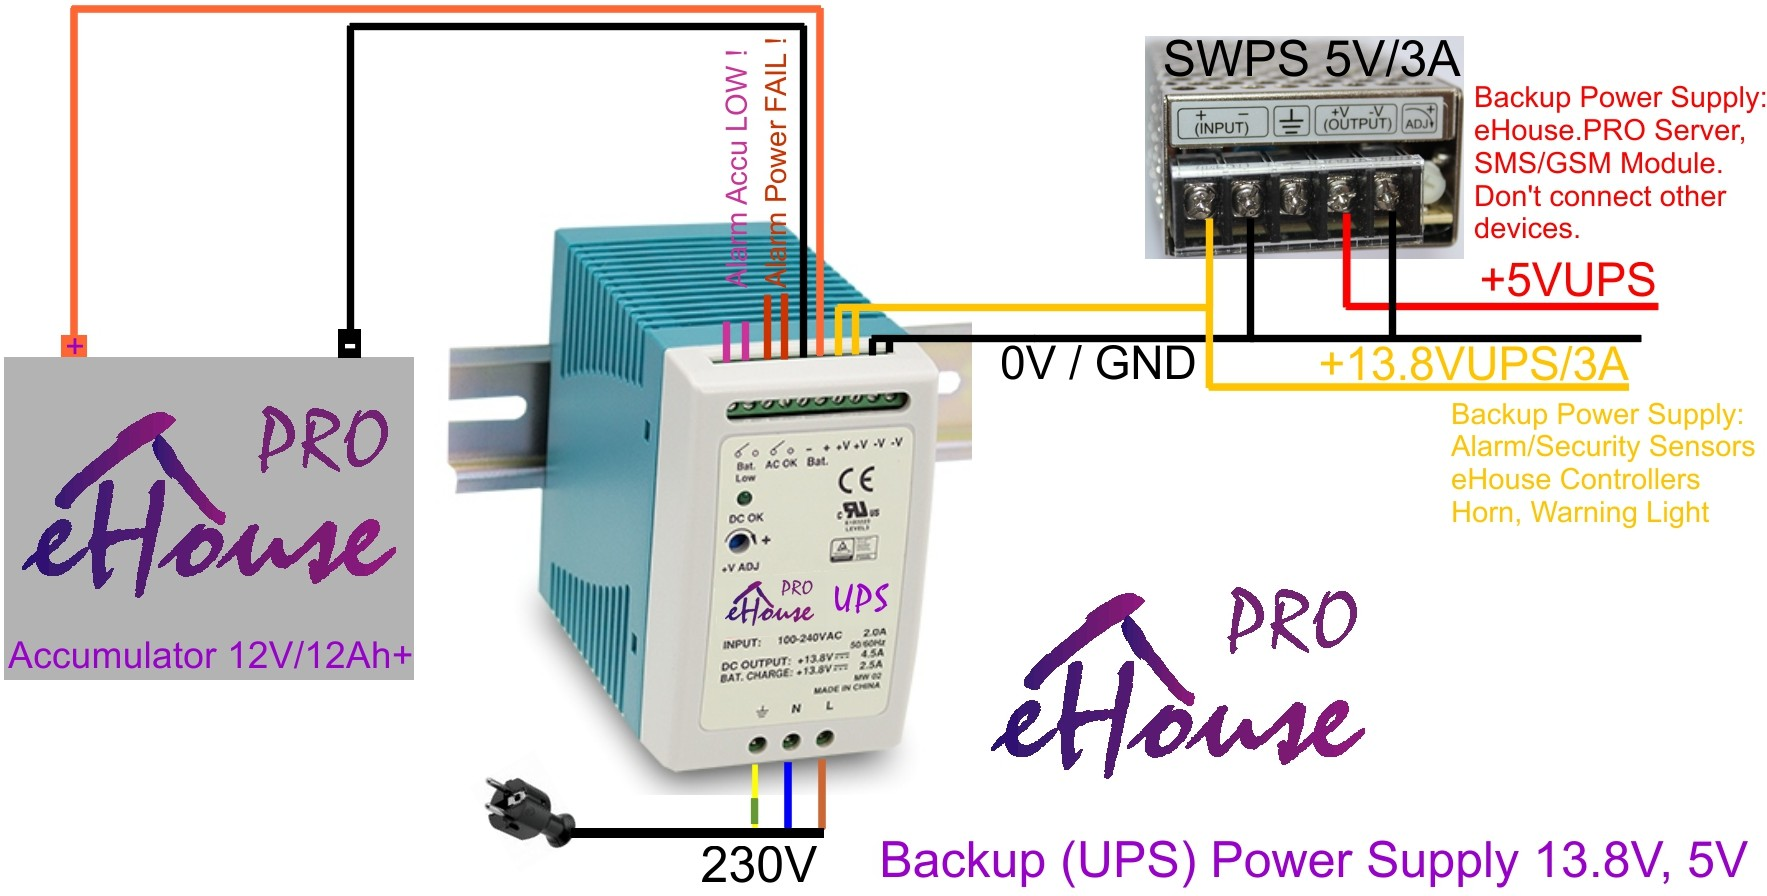 eHouse.Pro home automation UPS power supply conection